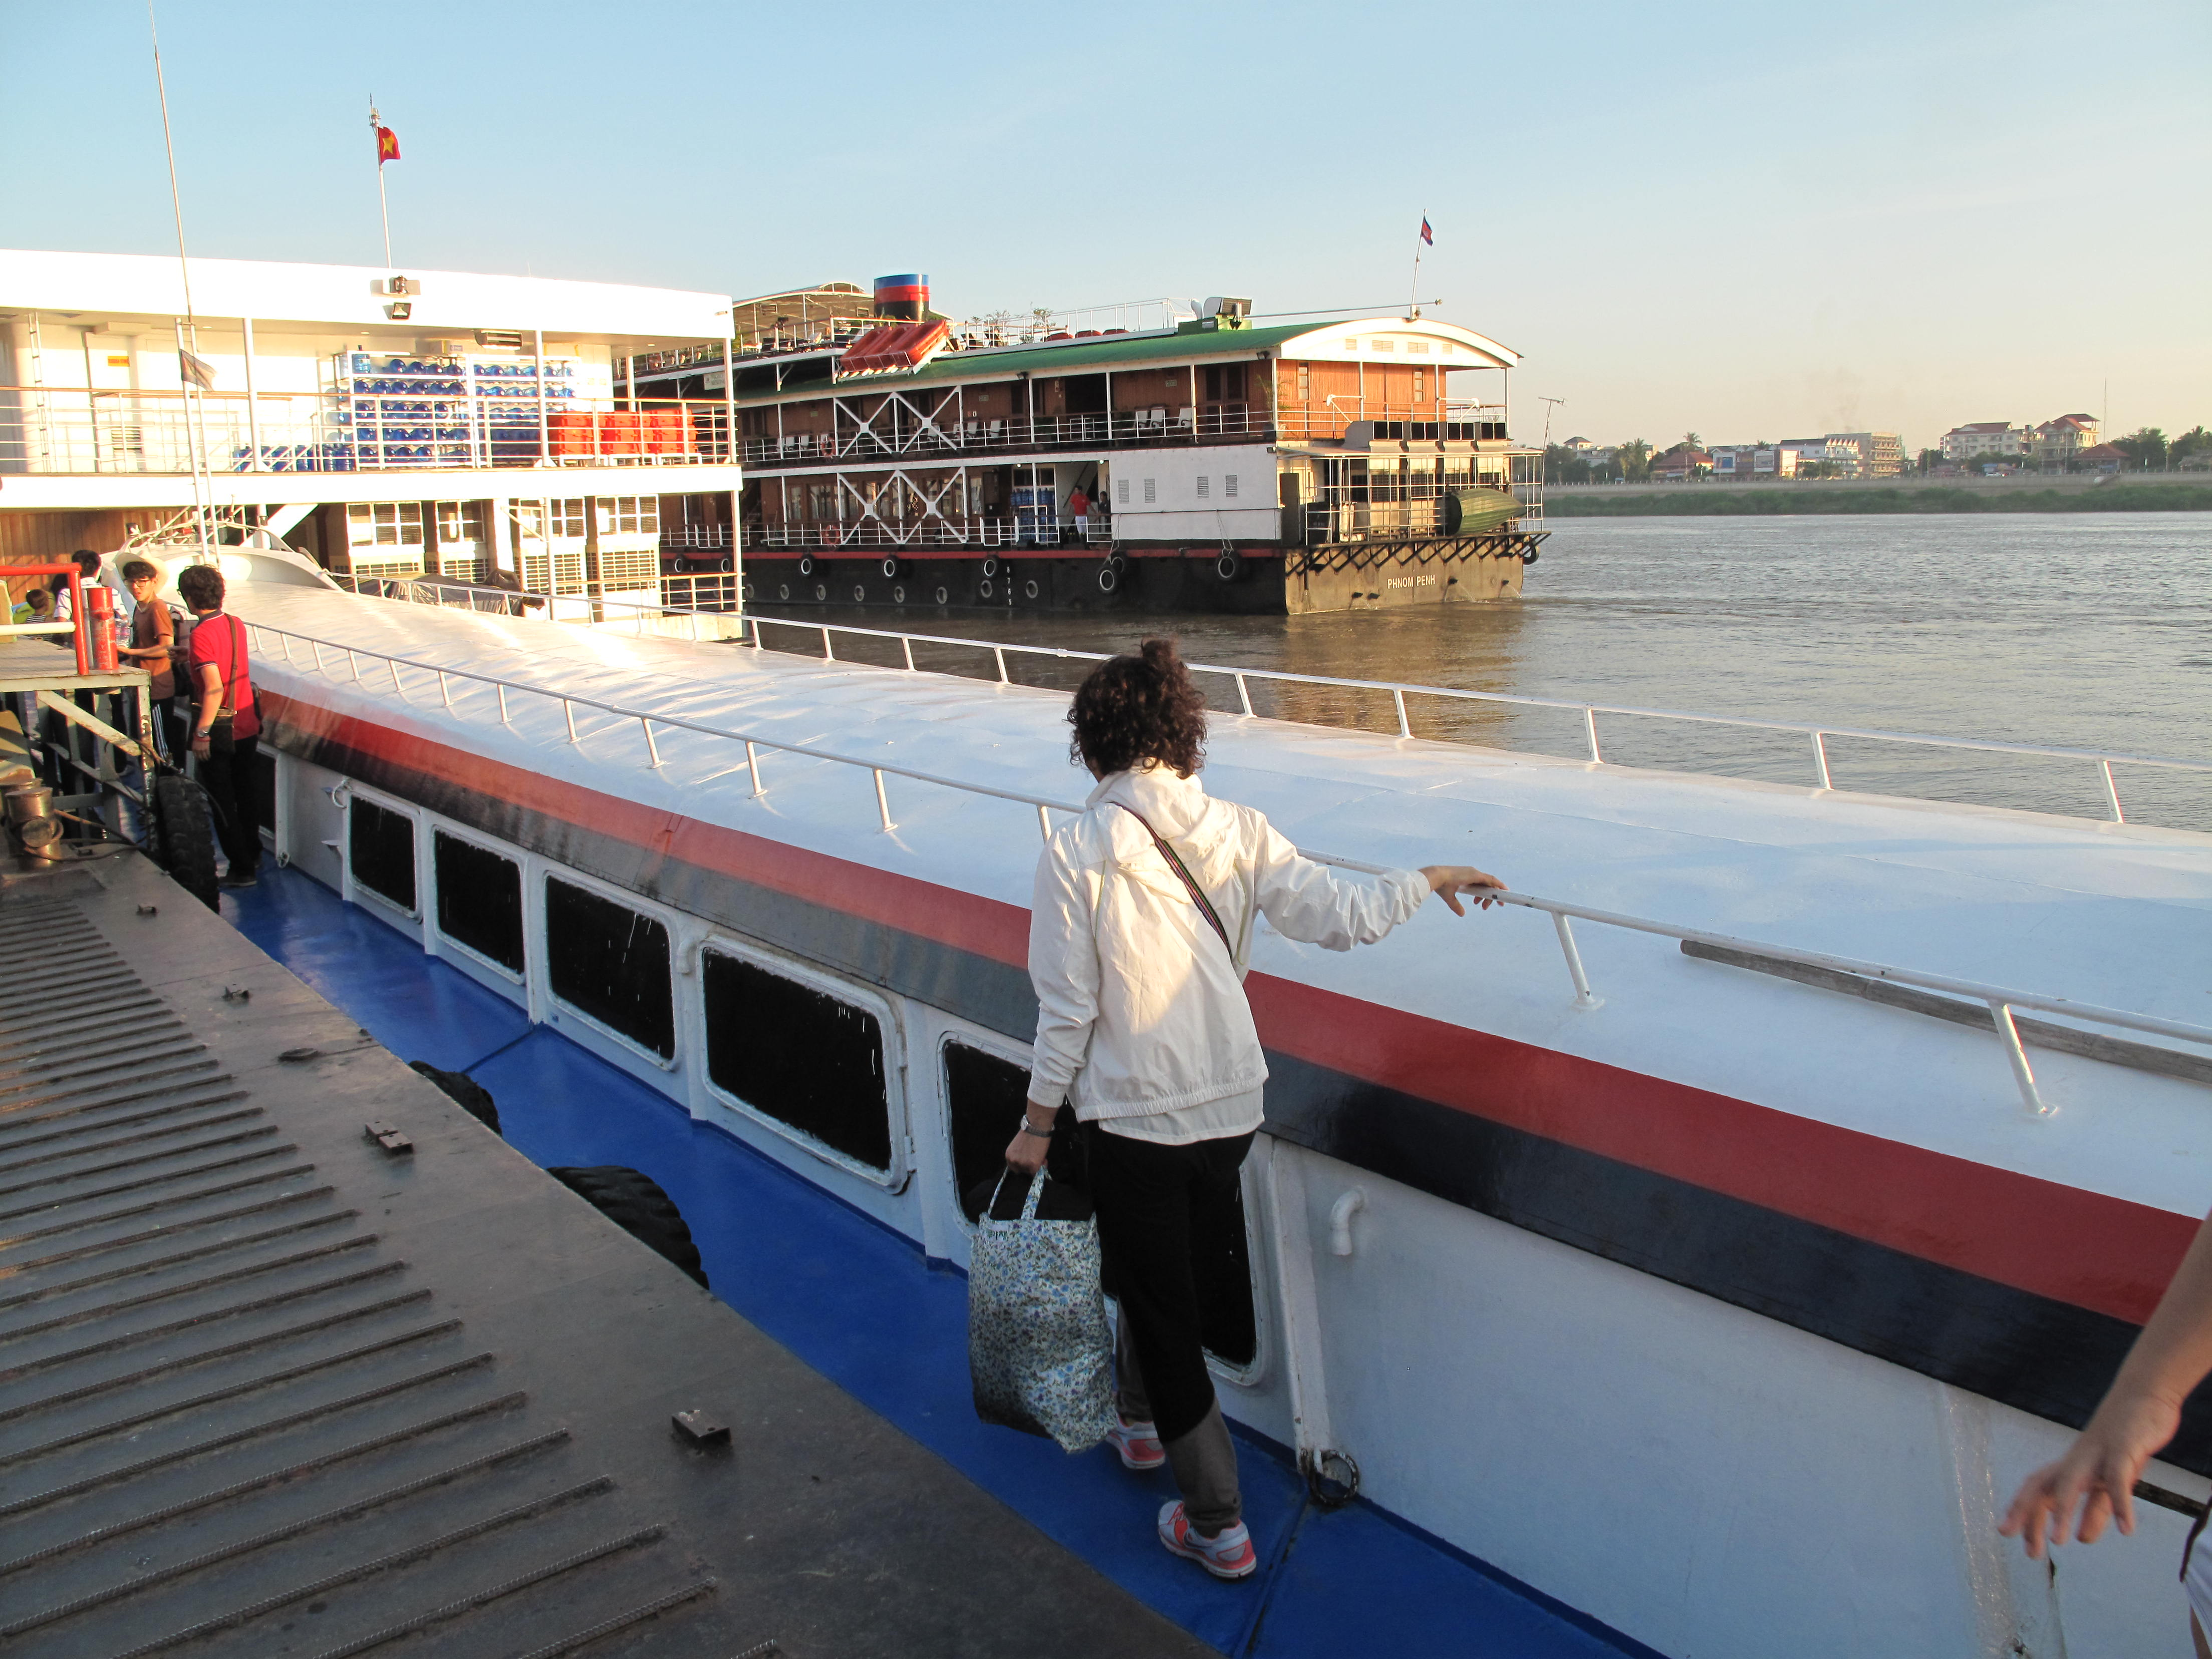 How to get from Phnom Penh to Siem Reap